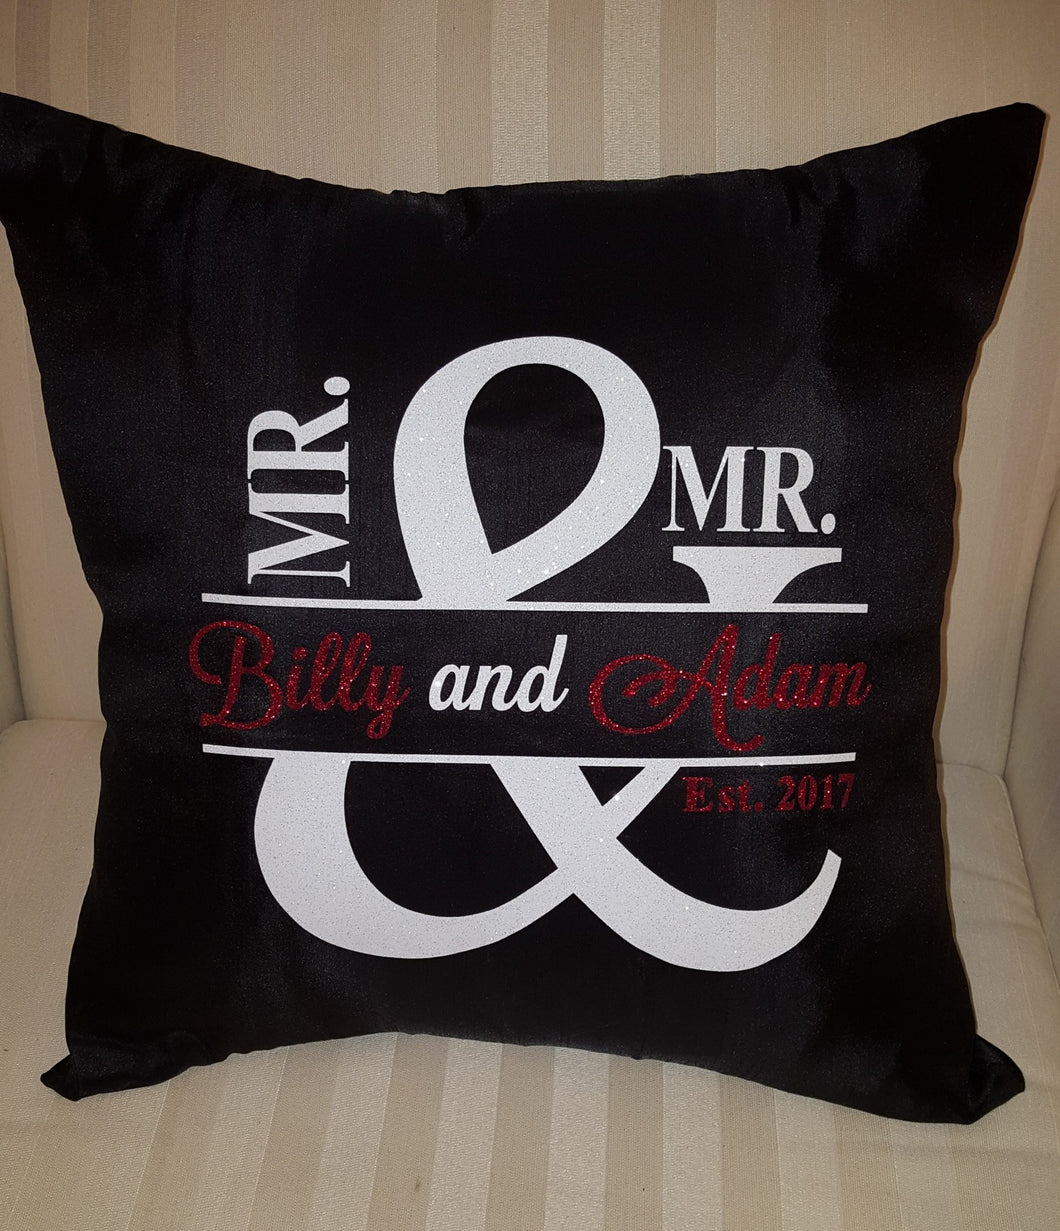 Mr and Mr(s) Pillow